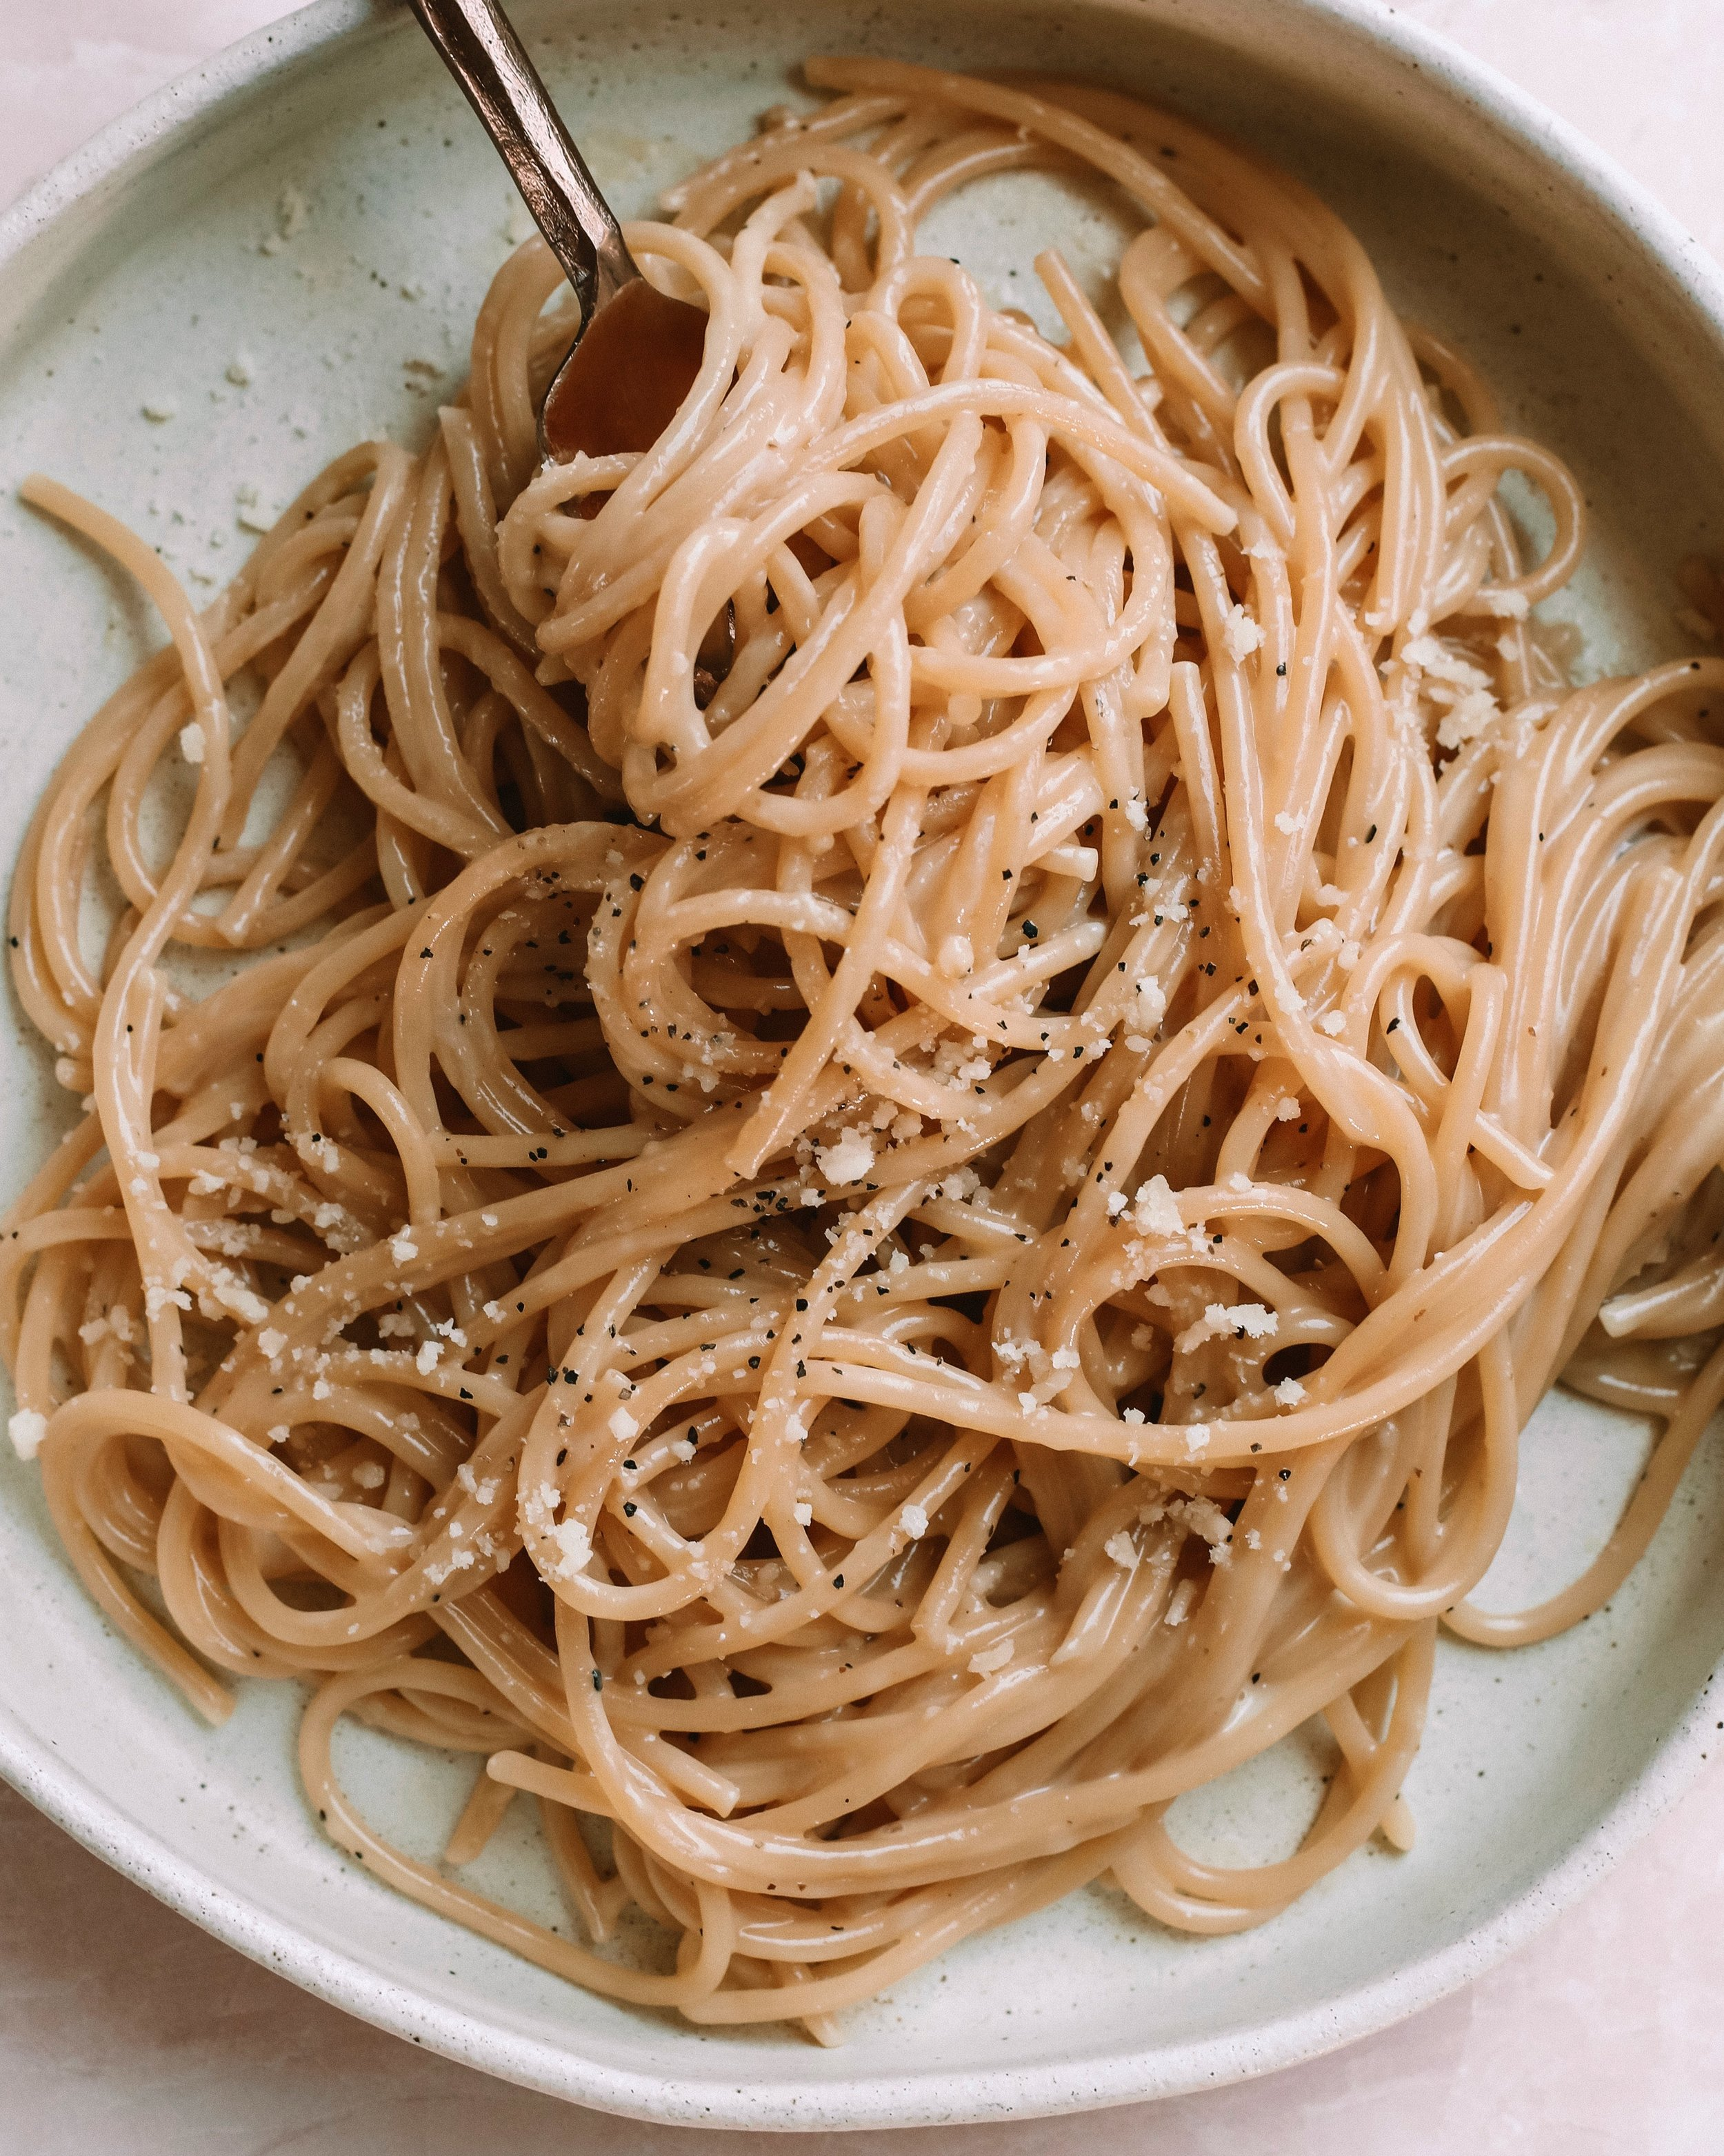 CACIO E PEPE - INGREDIENTSone package Eat Banza Chickpea Spaghetti pasta3 tb Organic Pastures Raw Salted Butter1 tb olive oil2/3 cup raw parmesan cheese1 egg yolk2 tsp ground black pepper